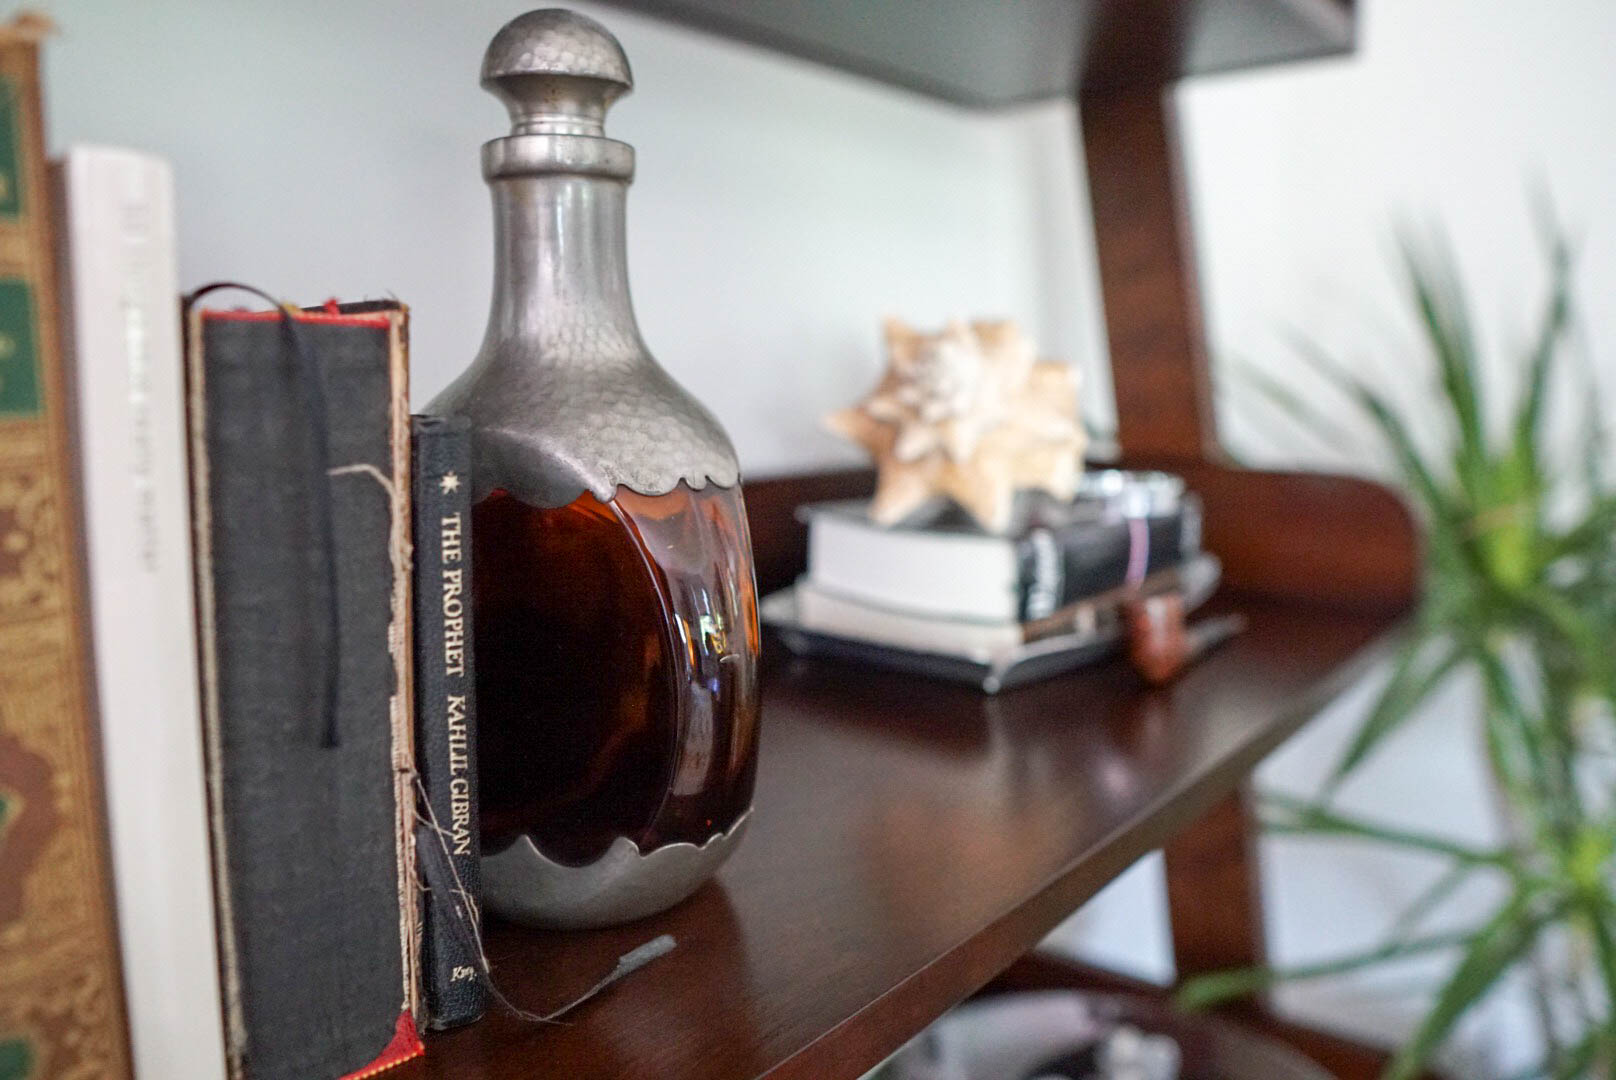 Pop-Pop's antique liquor bottle serves as the perfect bookend (and his old pipe).